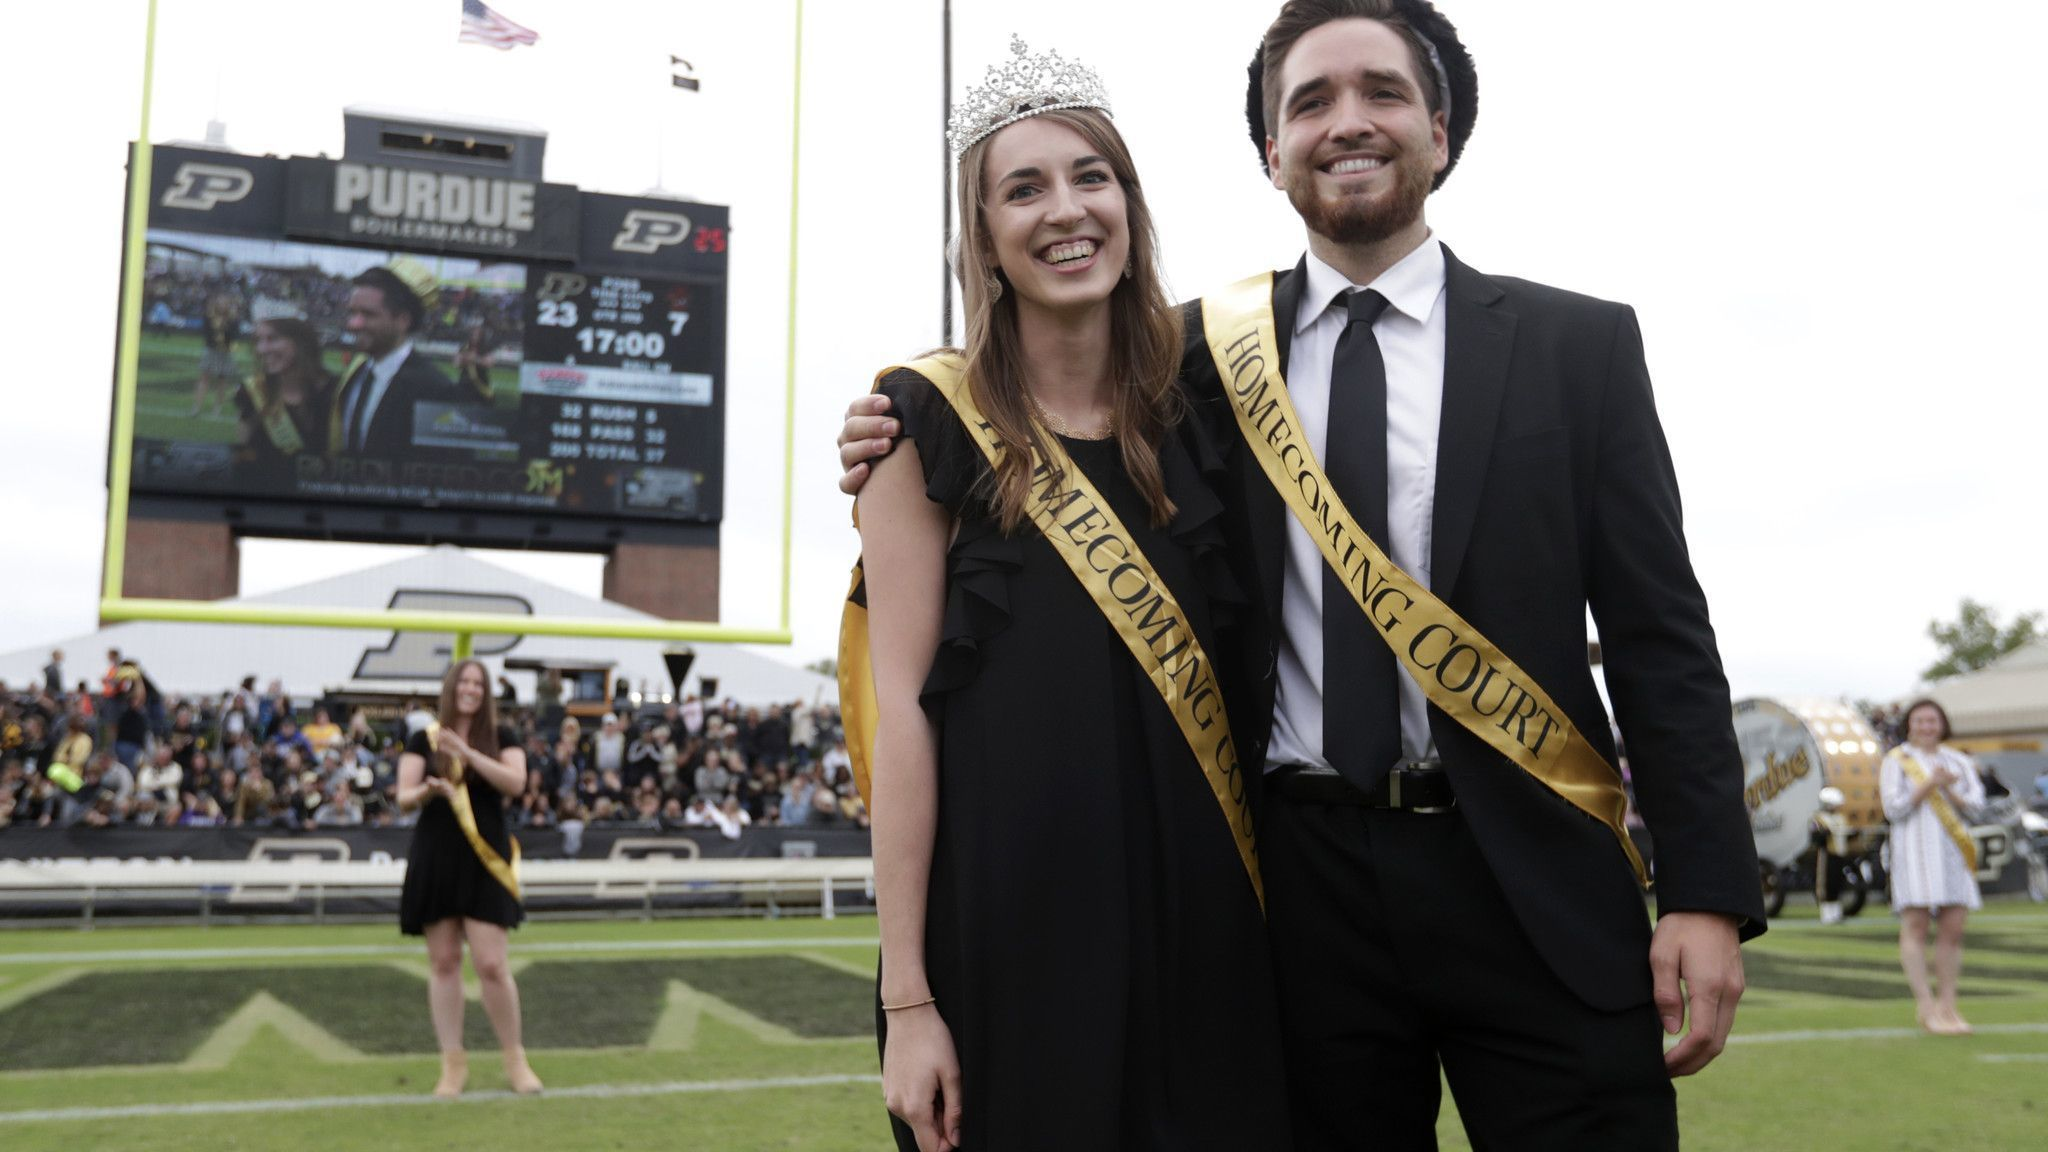 Homecoming goes gender-neutral: More schools ditching king, queen traditions